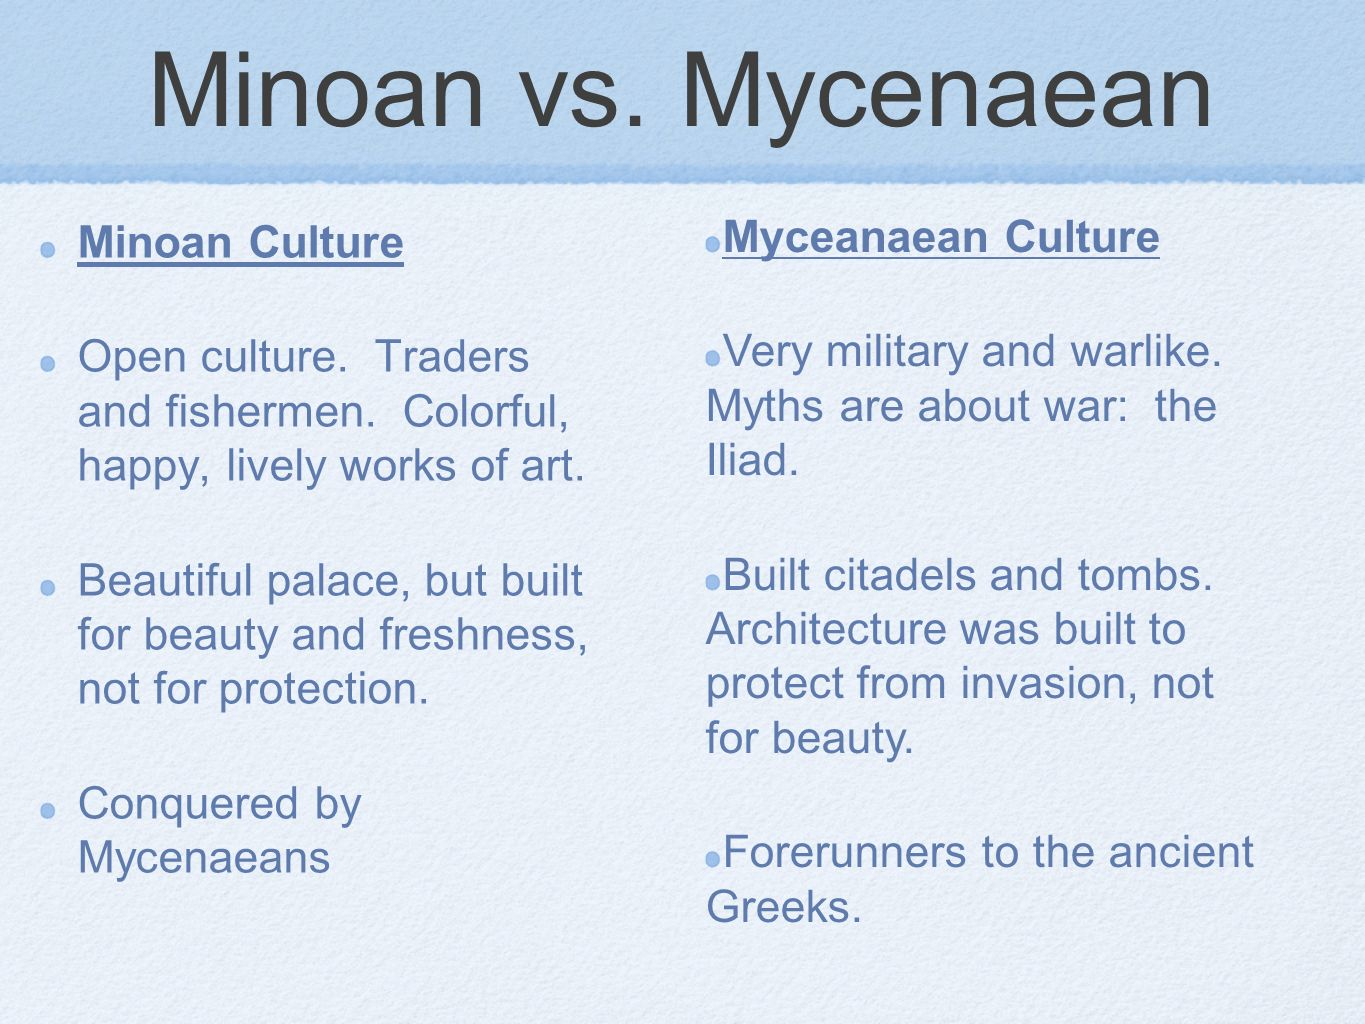 minoan mycenaean similarities Many similarities and differences exist between the minoan and mycenaean cultures these characteristics that defined these societies correlate directly to the.